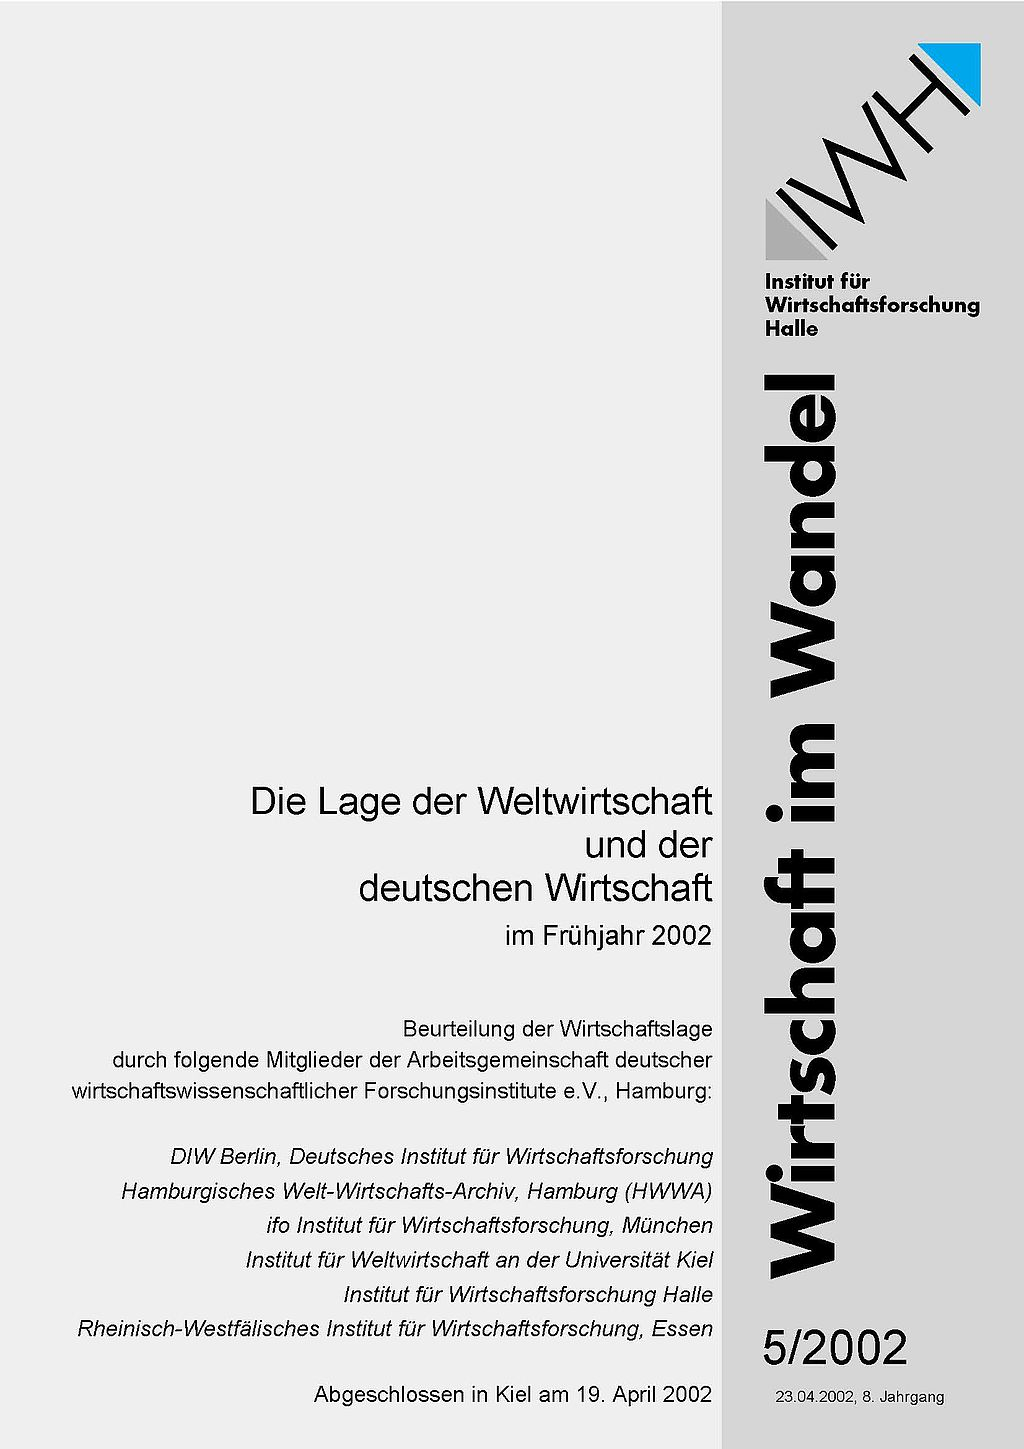 cover_gd_2002-fruehjahr.jpg